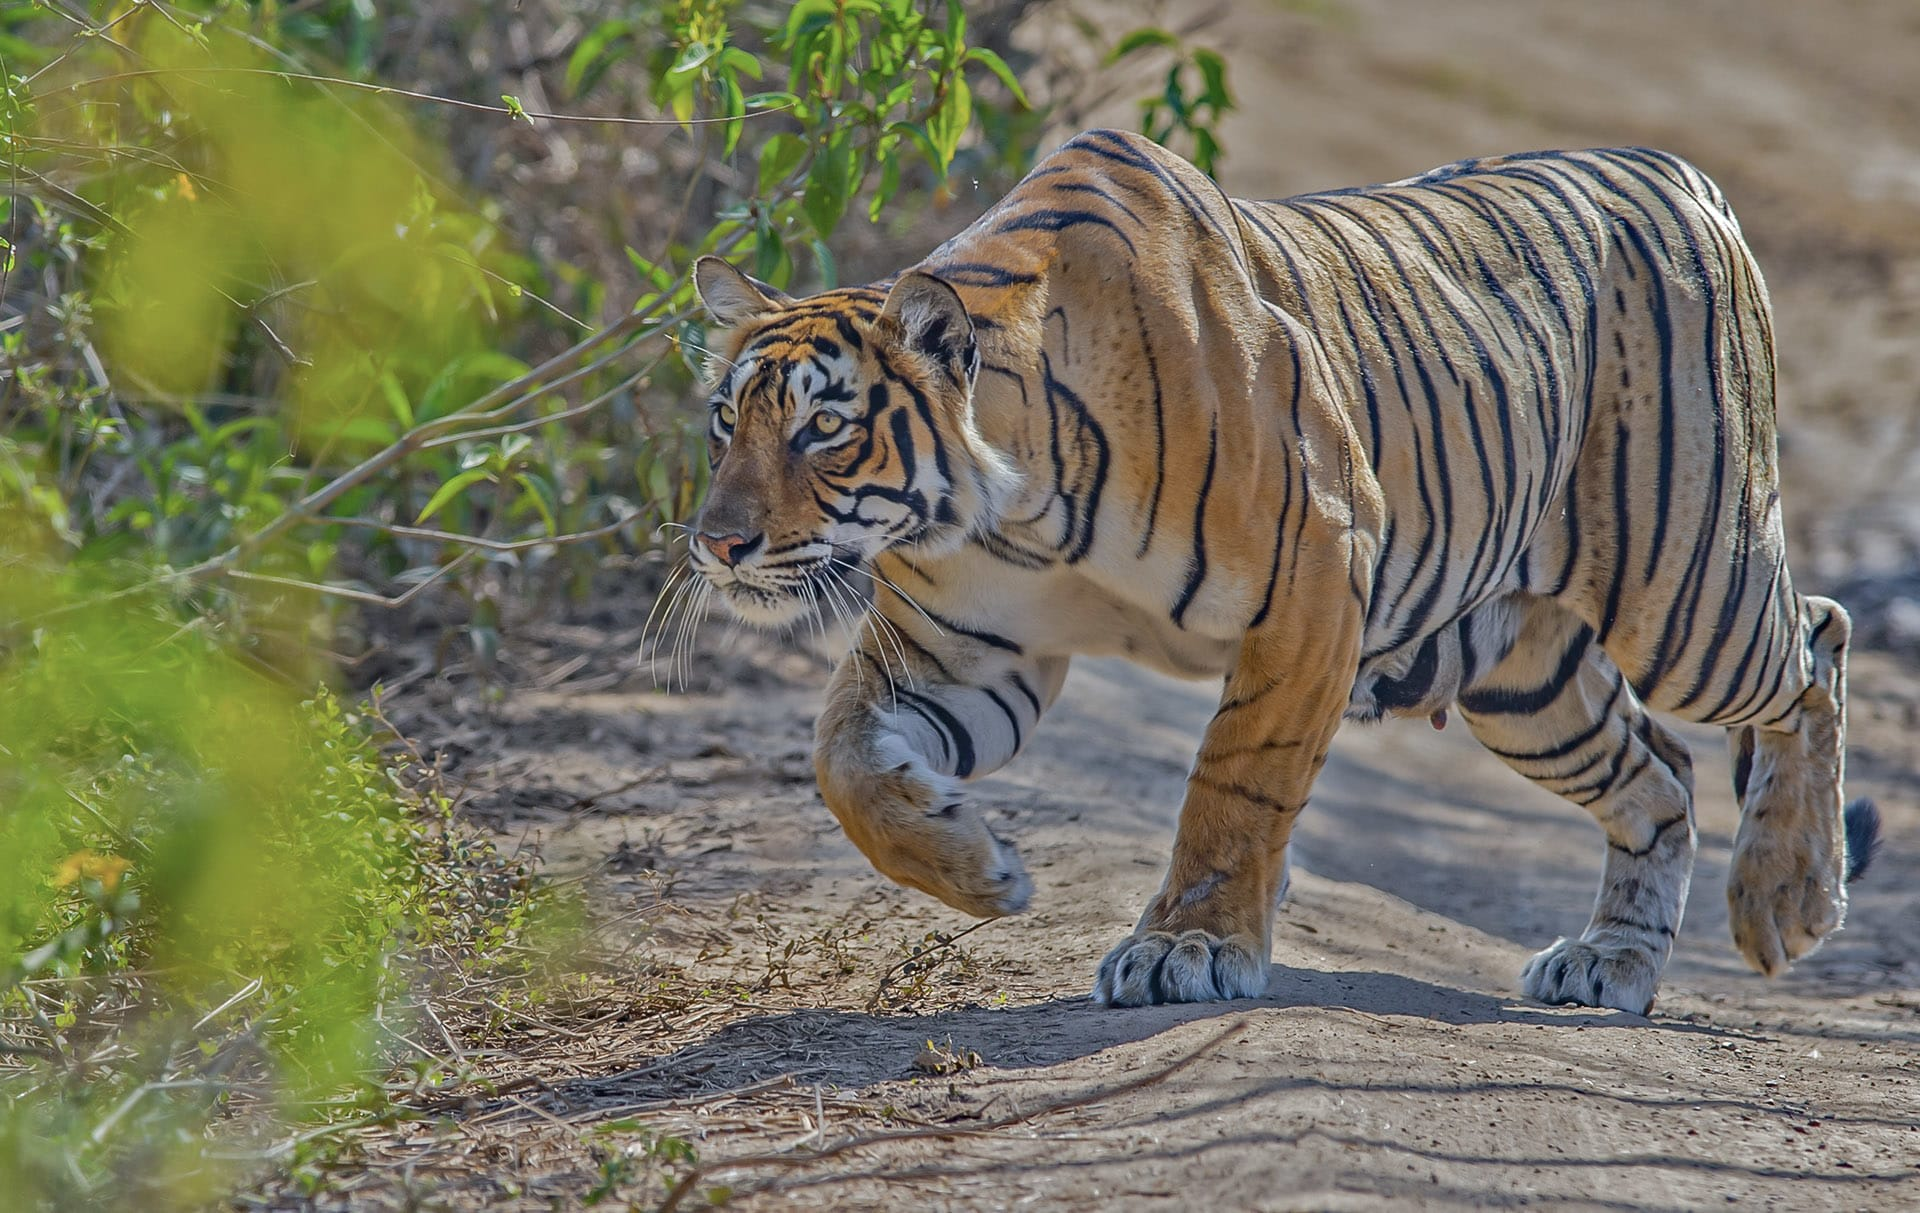 "Tigers, like many large mammals, are believed to have a mental map of their territories. ""For example, when a tiger misses killing its prey in a particular location, it will often immediately venture out to the next known location, where prey is abundant,"" says Chatterjee.  This is part of why scientists find tigers so fascinating: How do they decide the extent of their territory, and more significantly, how do they communicate this to other individuals in the habitat?"